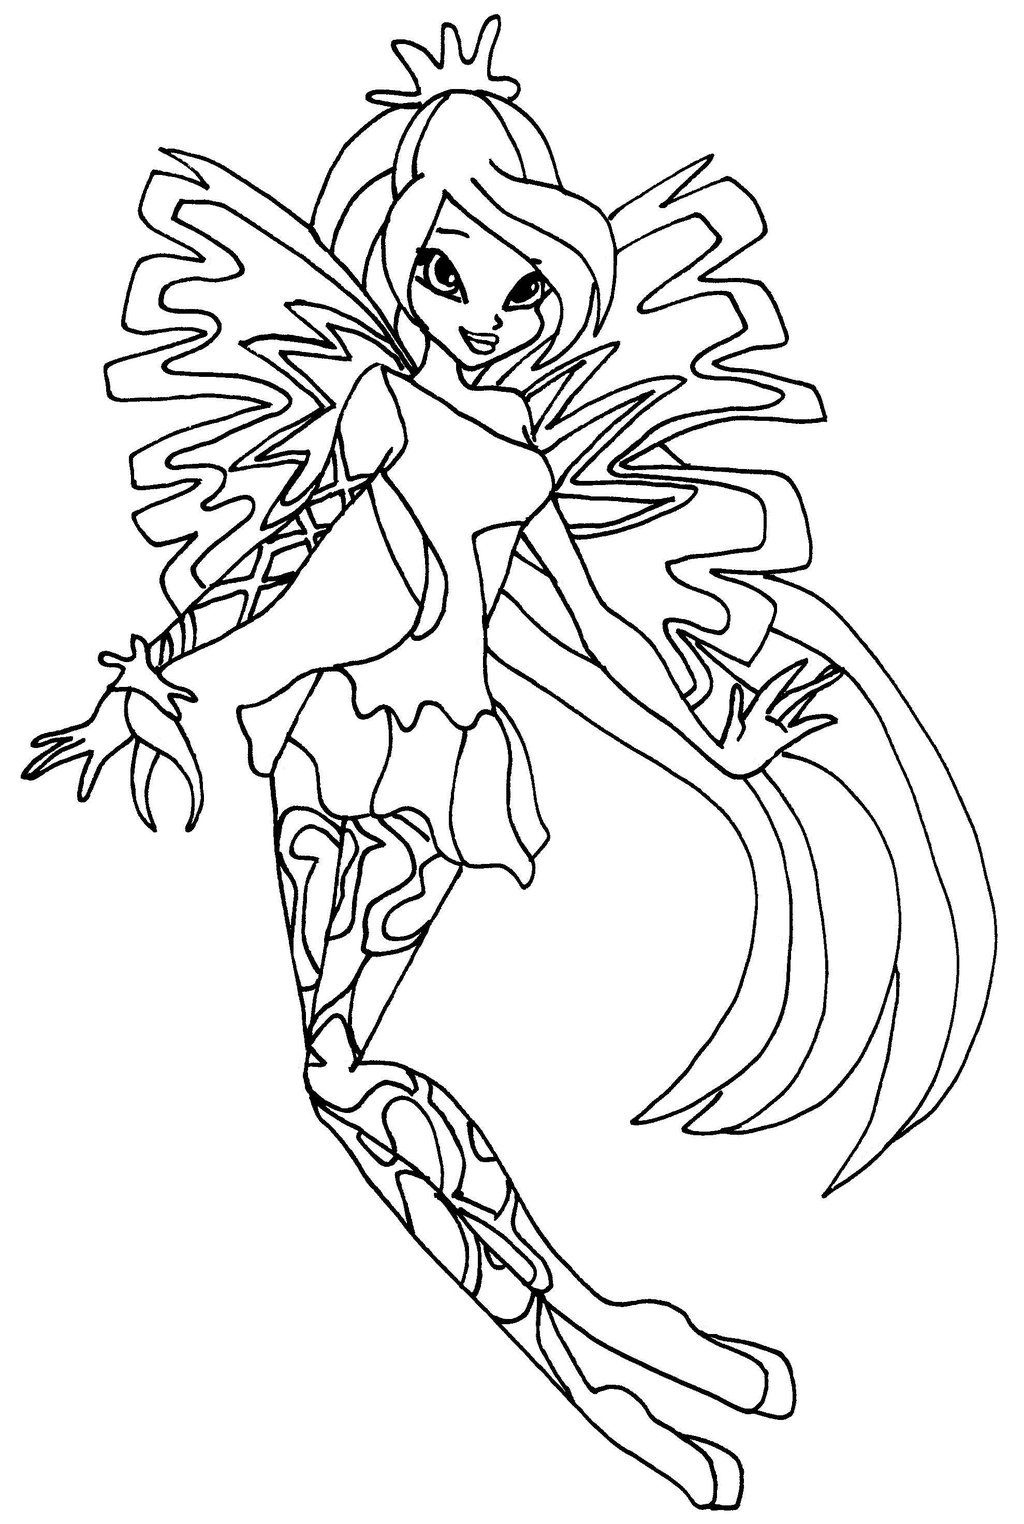 Winx Club Bloom Sirenix Coloring Pages Cartoon Coloring Pages Coloring Pages Bear Coloring Pages